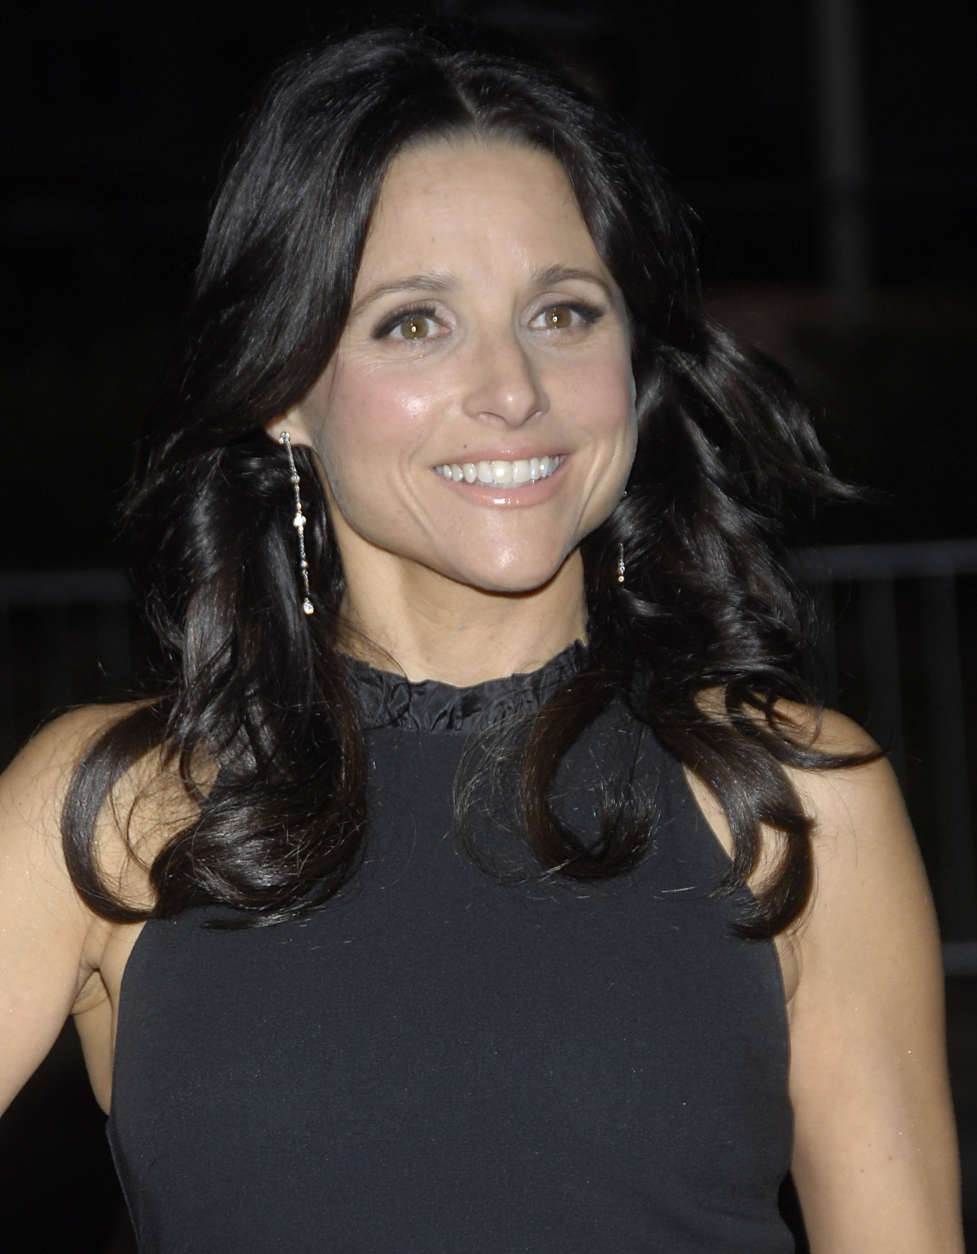 Actress Julia Louis-Dreyfuss poses on the press line at the 18th annual Environmental Media Awards benefiting the Environmental Media Association in Los Angeles on Thursday, Nov. 13, 2008. (AP Photo/Dan Steinberg)